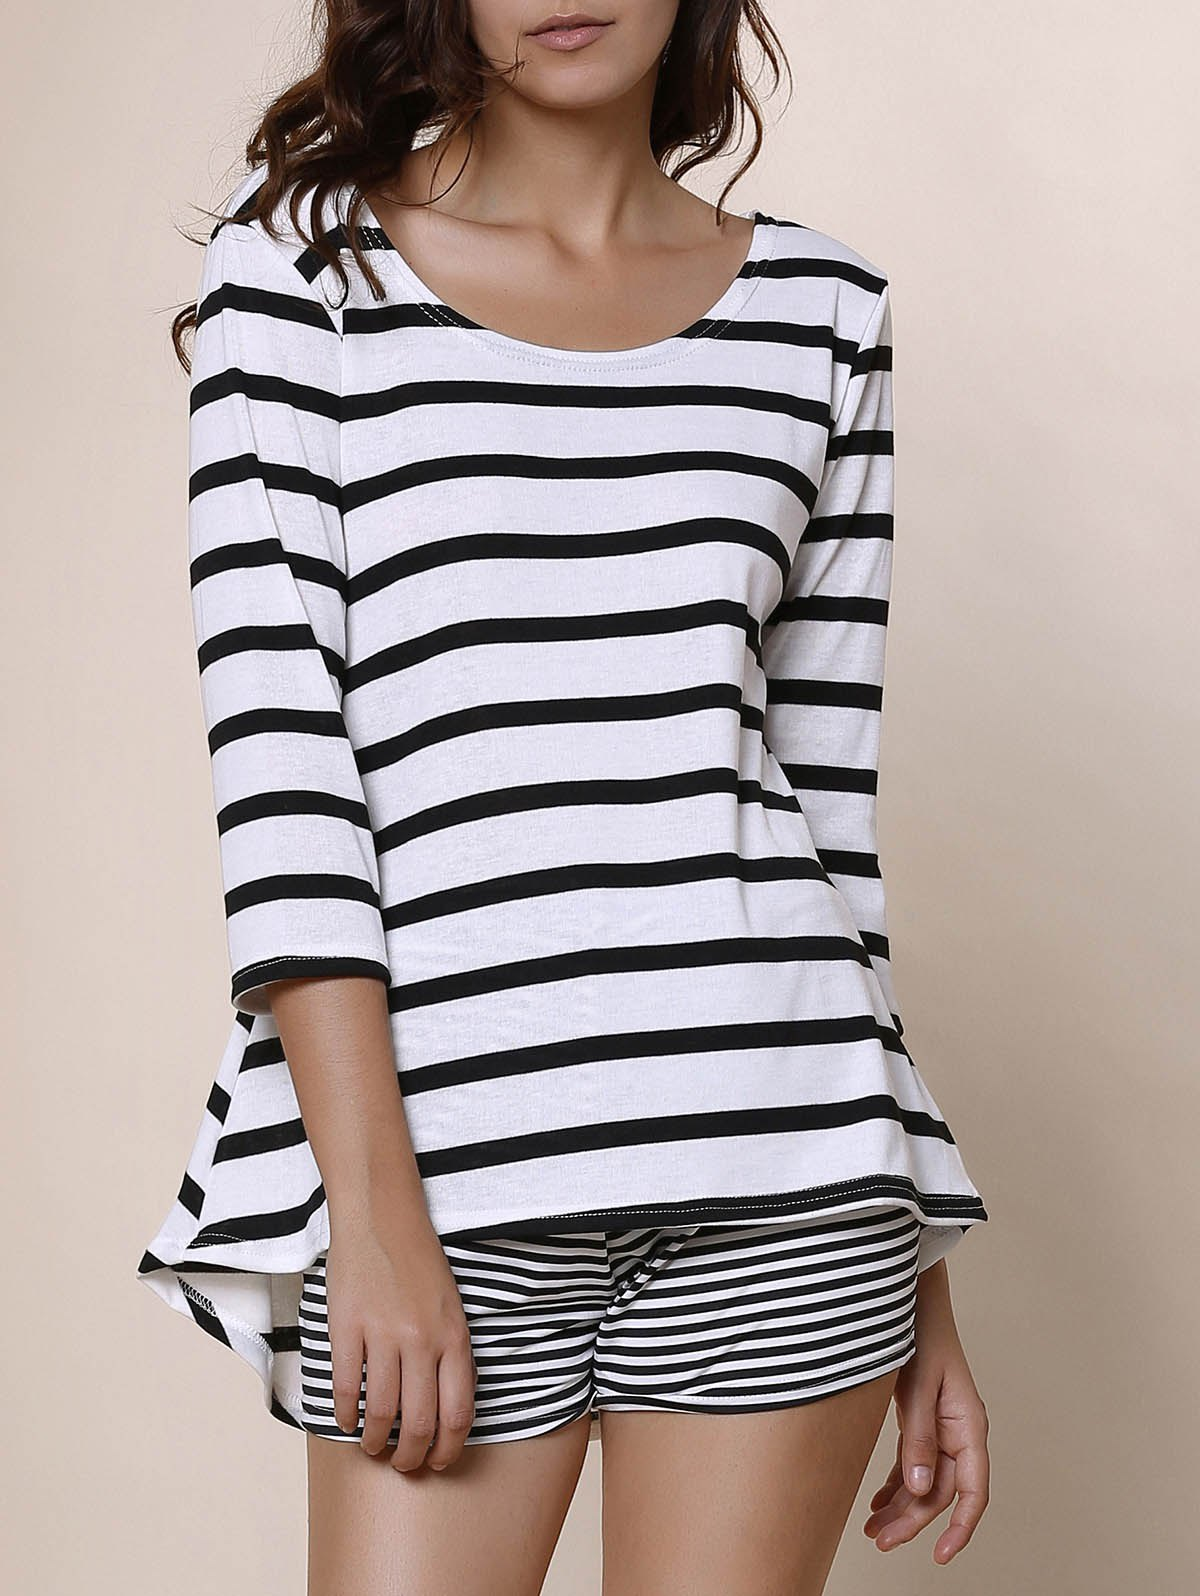 Simple Style Scoop Neck Stripe Print 3/4 Sleeve Blouse For Women - WHITE/BLACK M